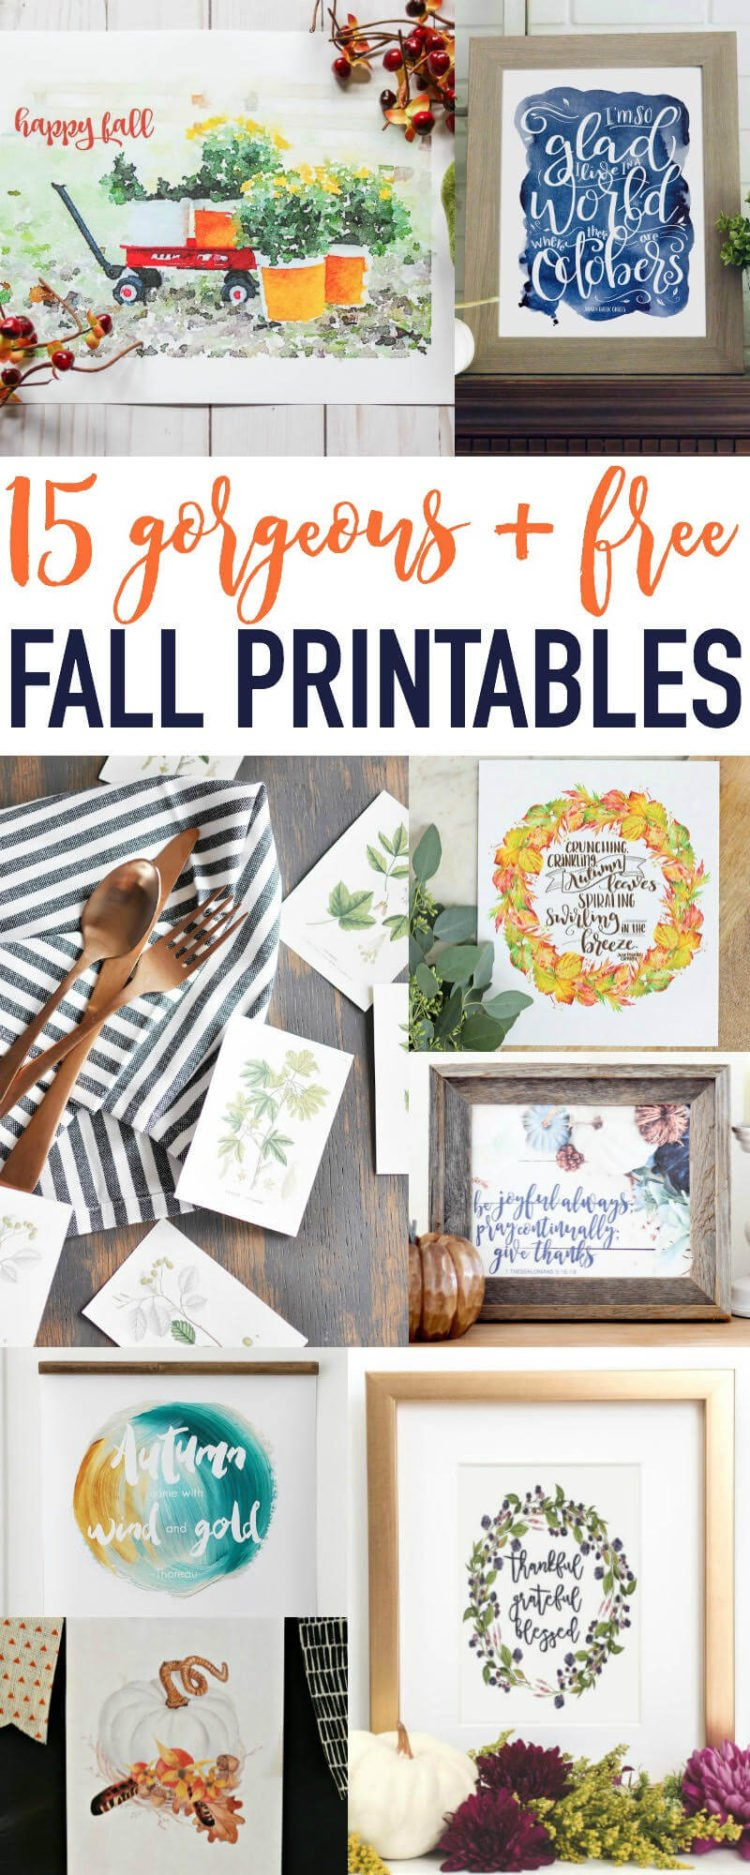 The free fall printables are perfect for your home Fall decor. #fallprintables #freeprintables